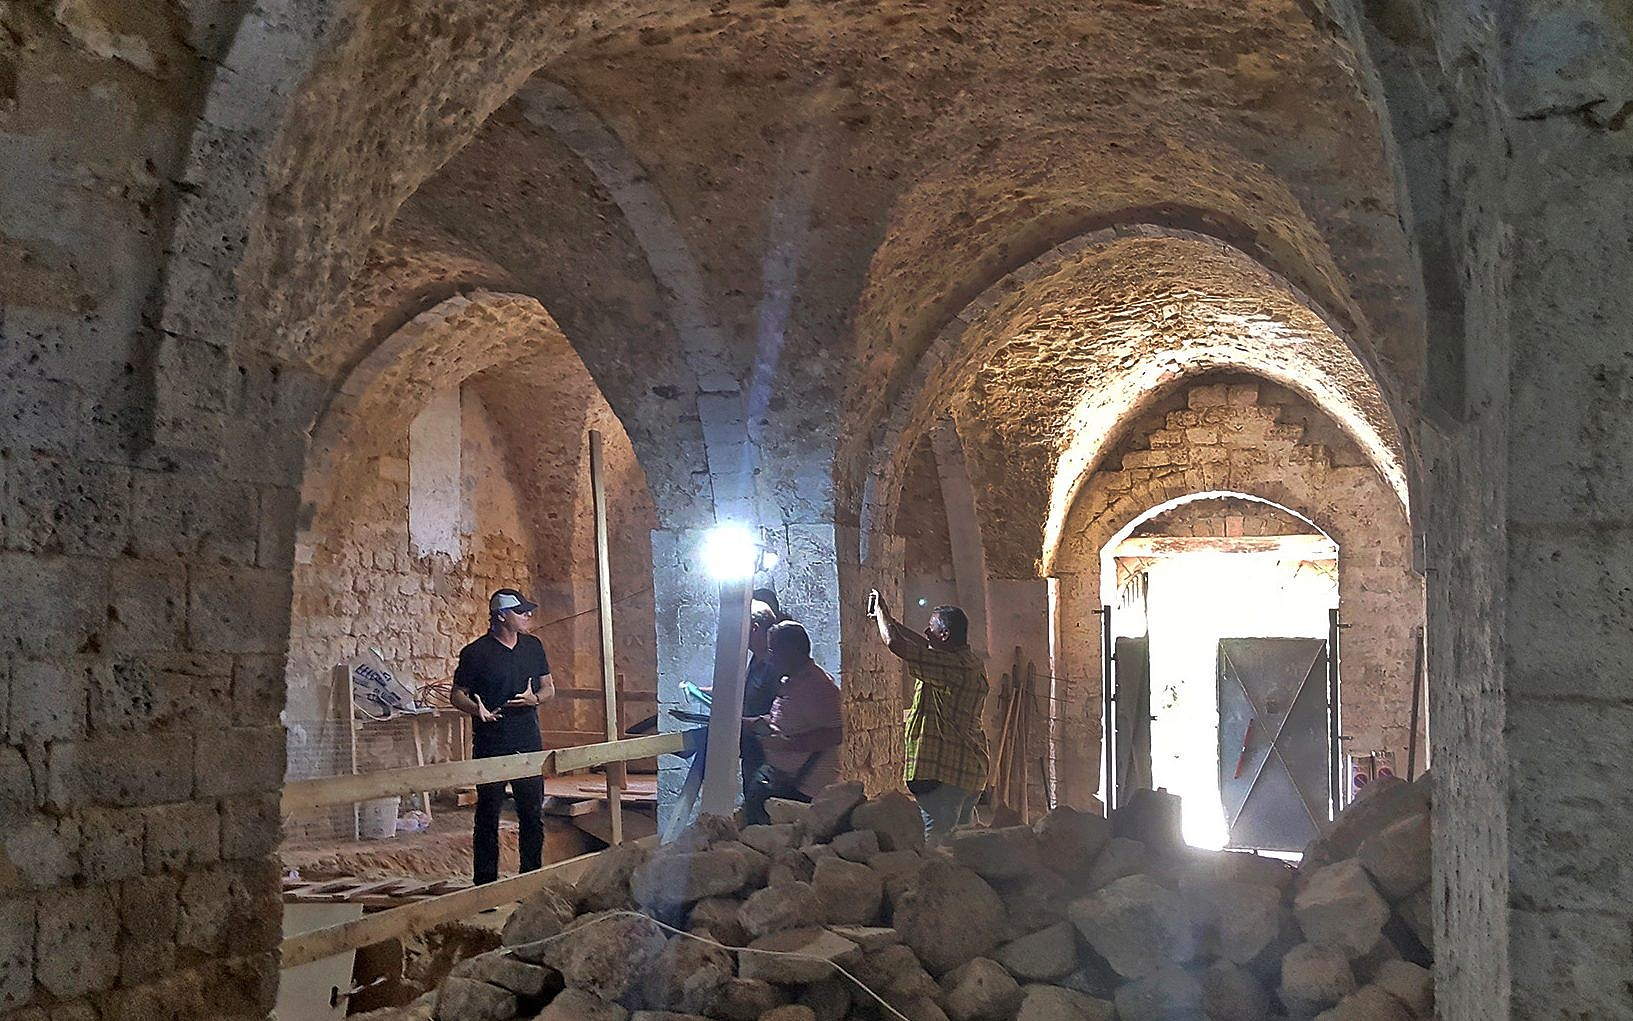 ottoman era soap factory unearthed